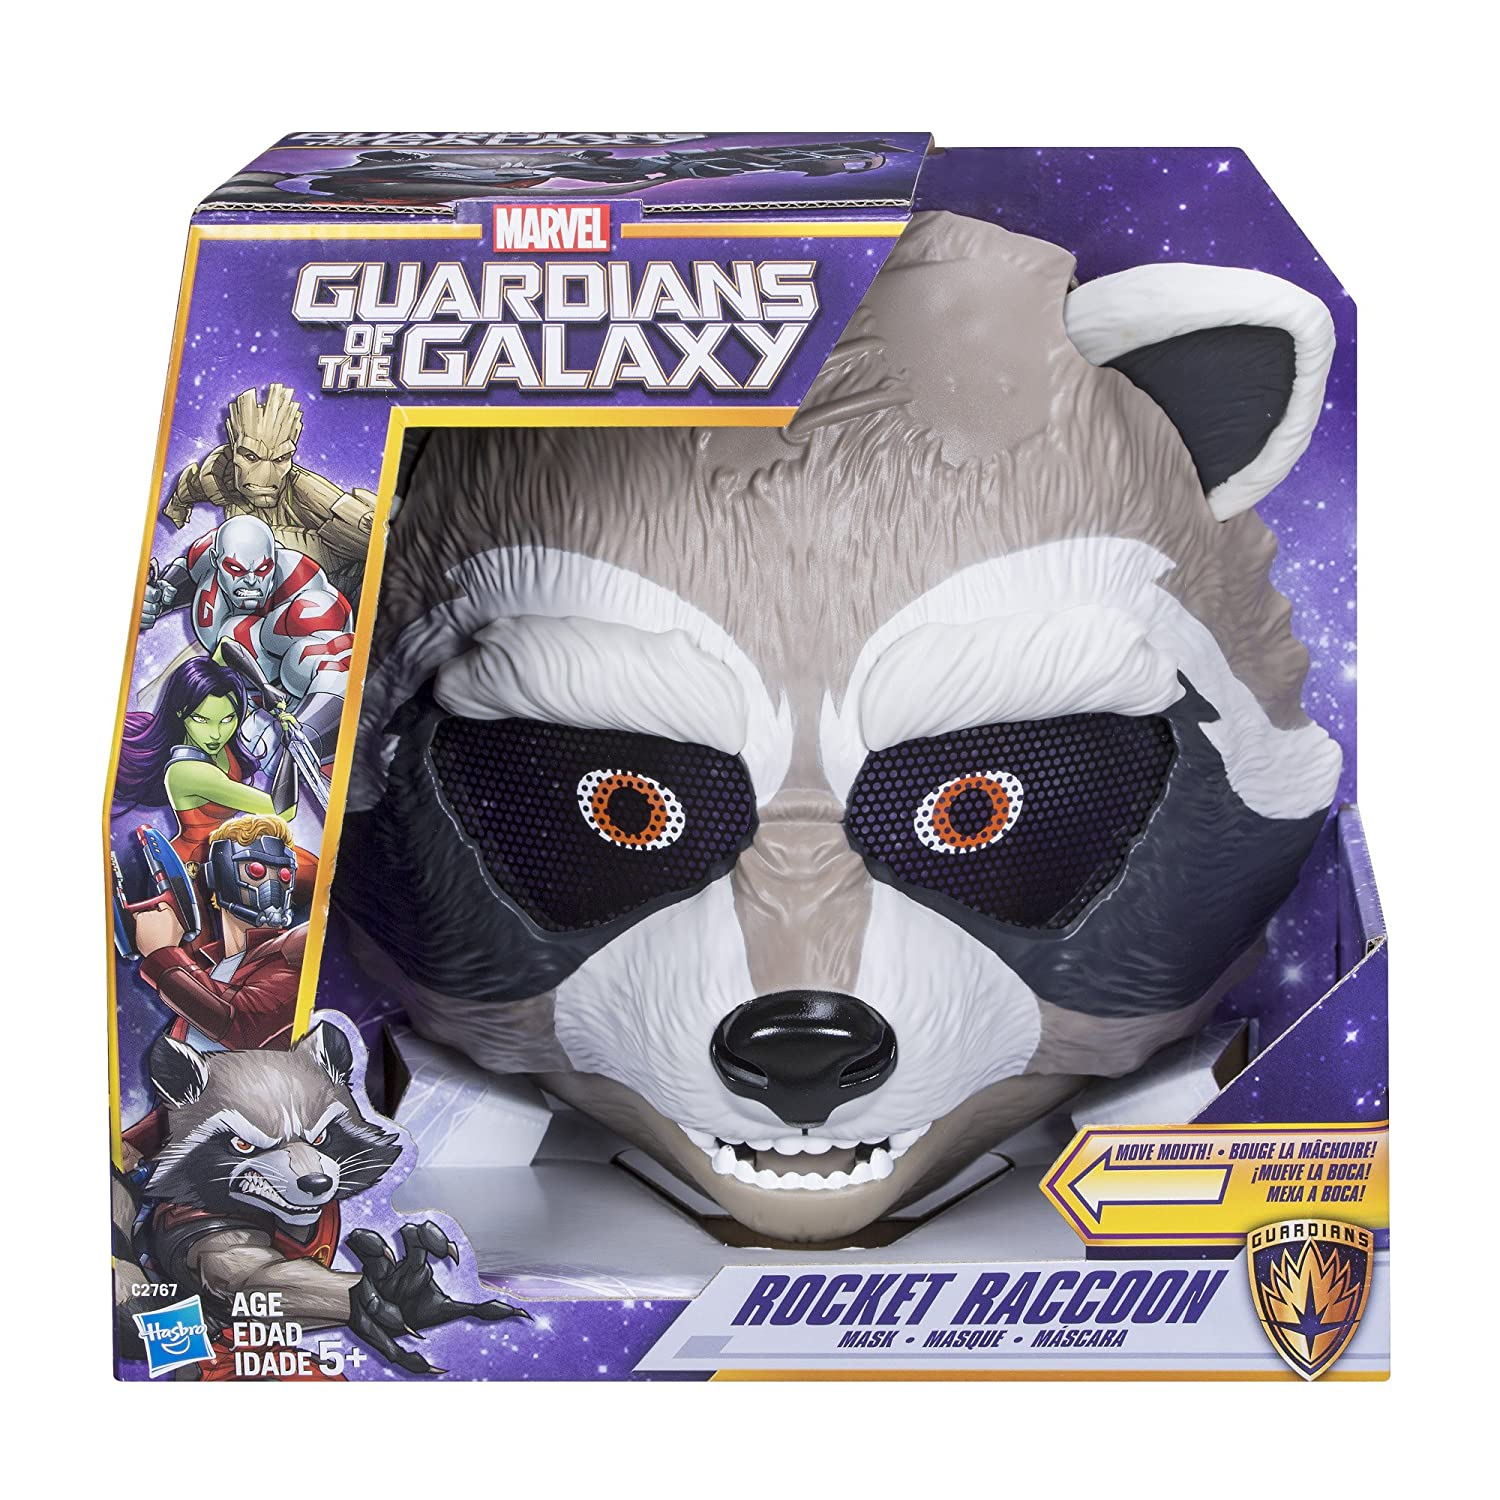 Amazon.com: Marvel Guardians The Galaxy Rocket Raccoon Mask: Toys & Games